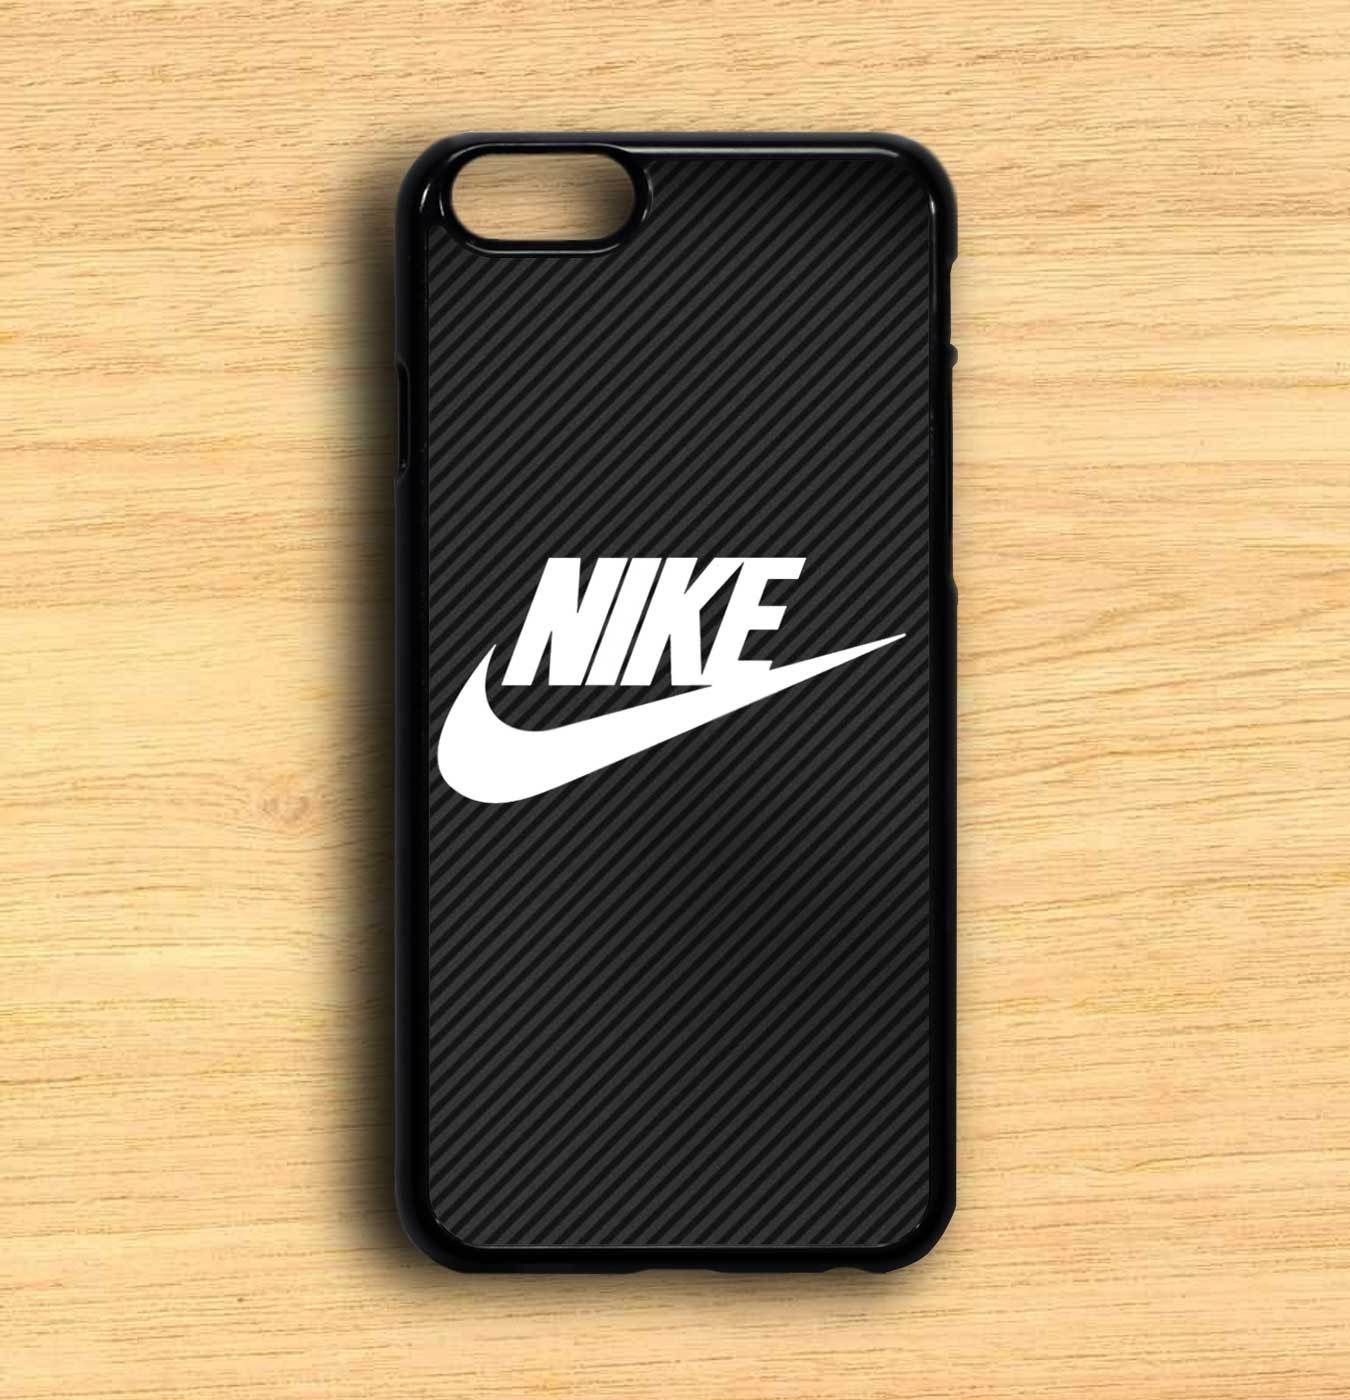 NIKE Swoosh Carbonate Case for iPhone 6 Plastic / Rubber